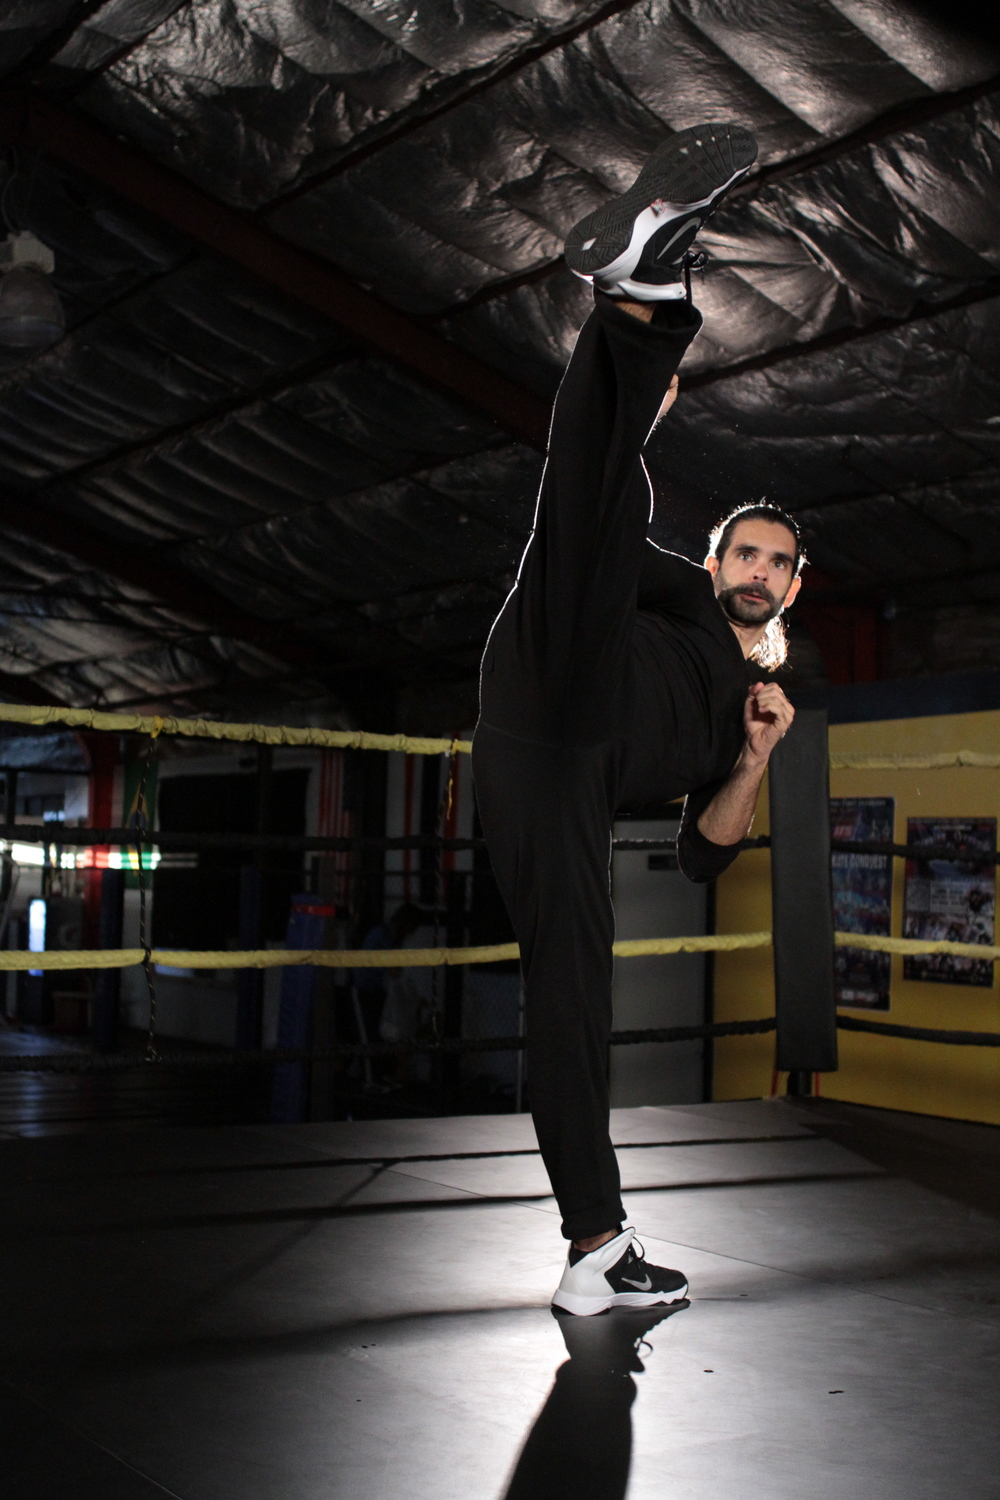 Guillermo Gomez doing a Roundhouse Kick.